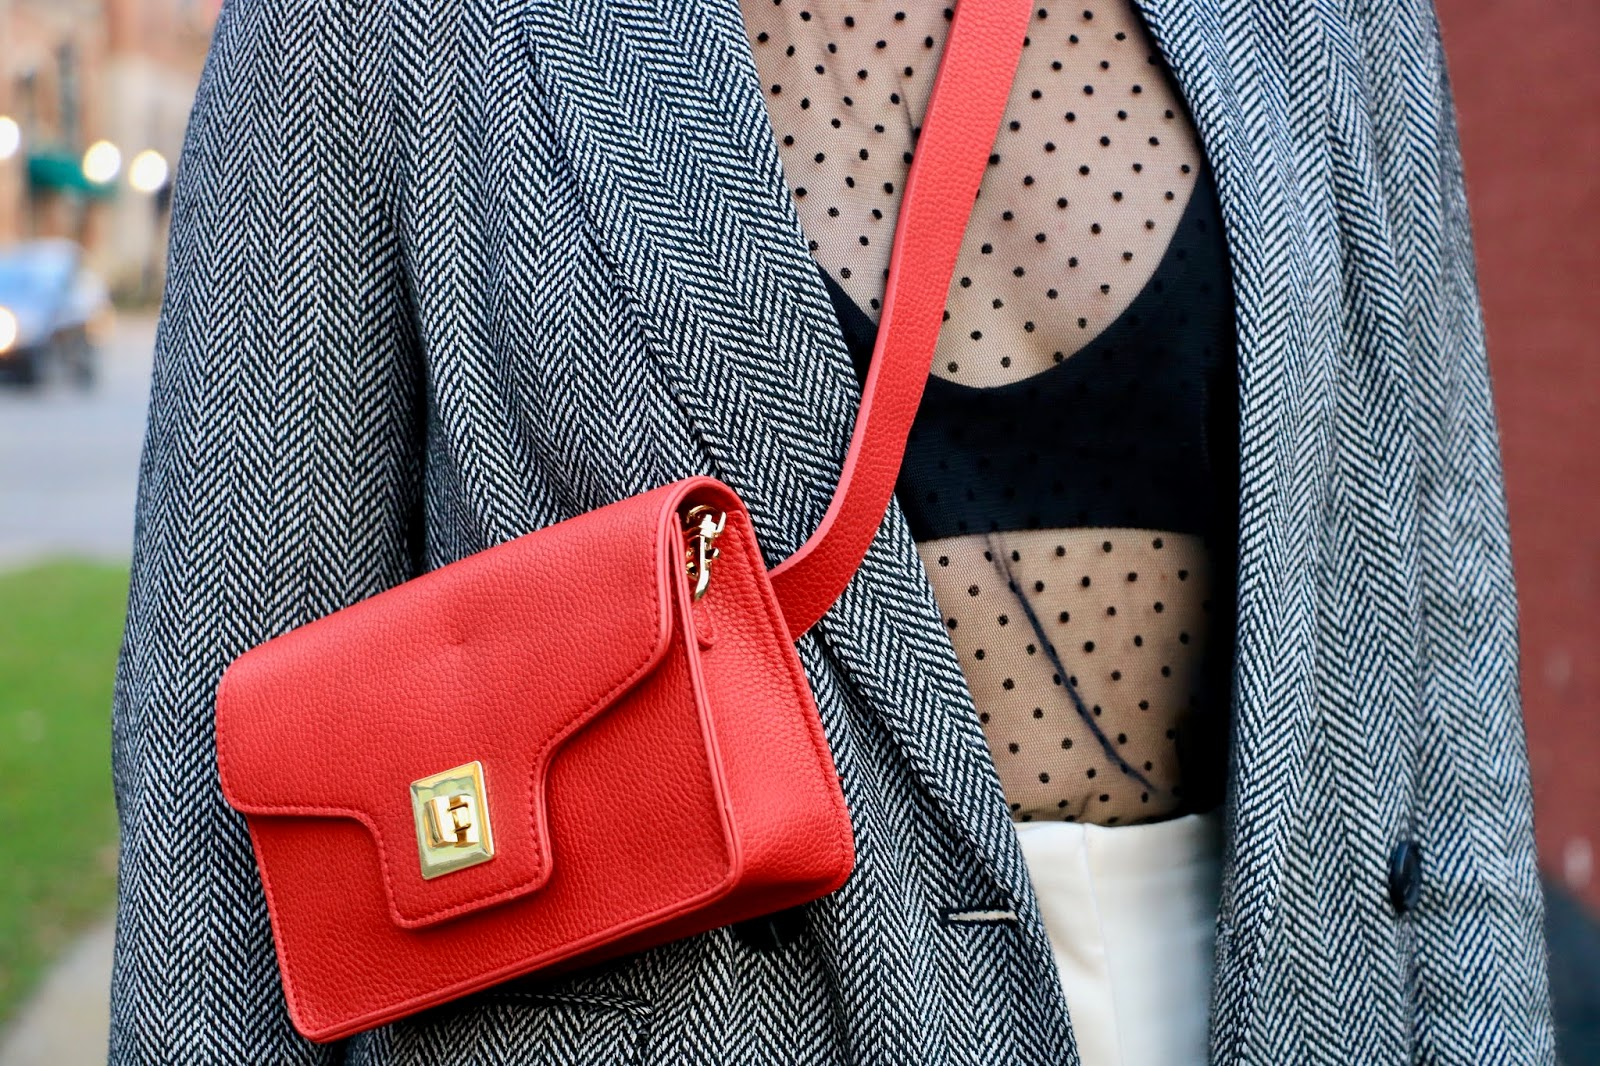 Nyc fashion blogger Kathleen Harper wearing a red leather belt bag from Barney's.